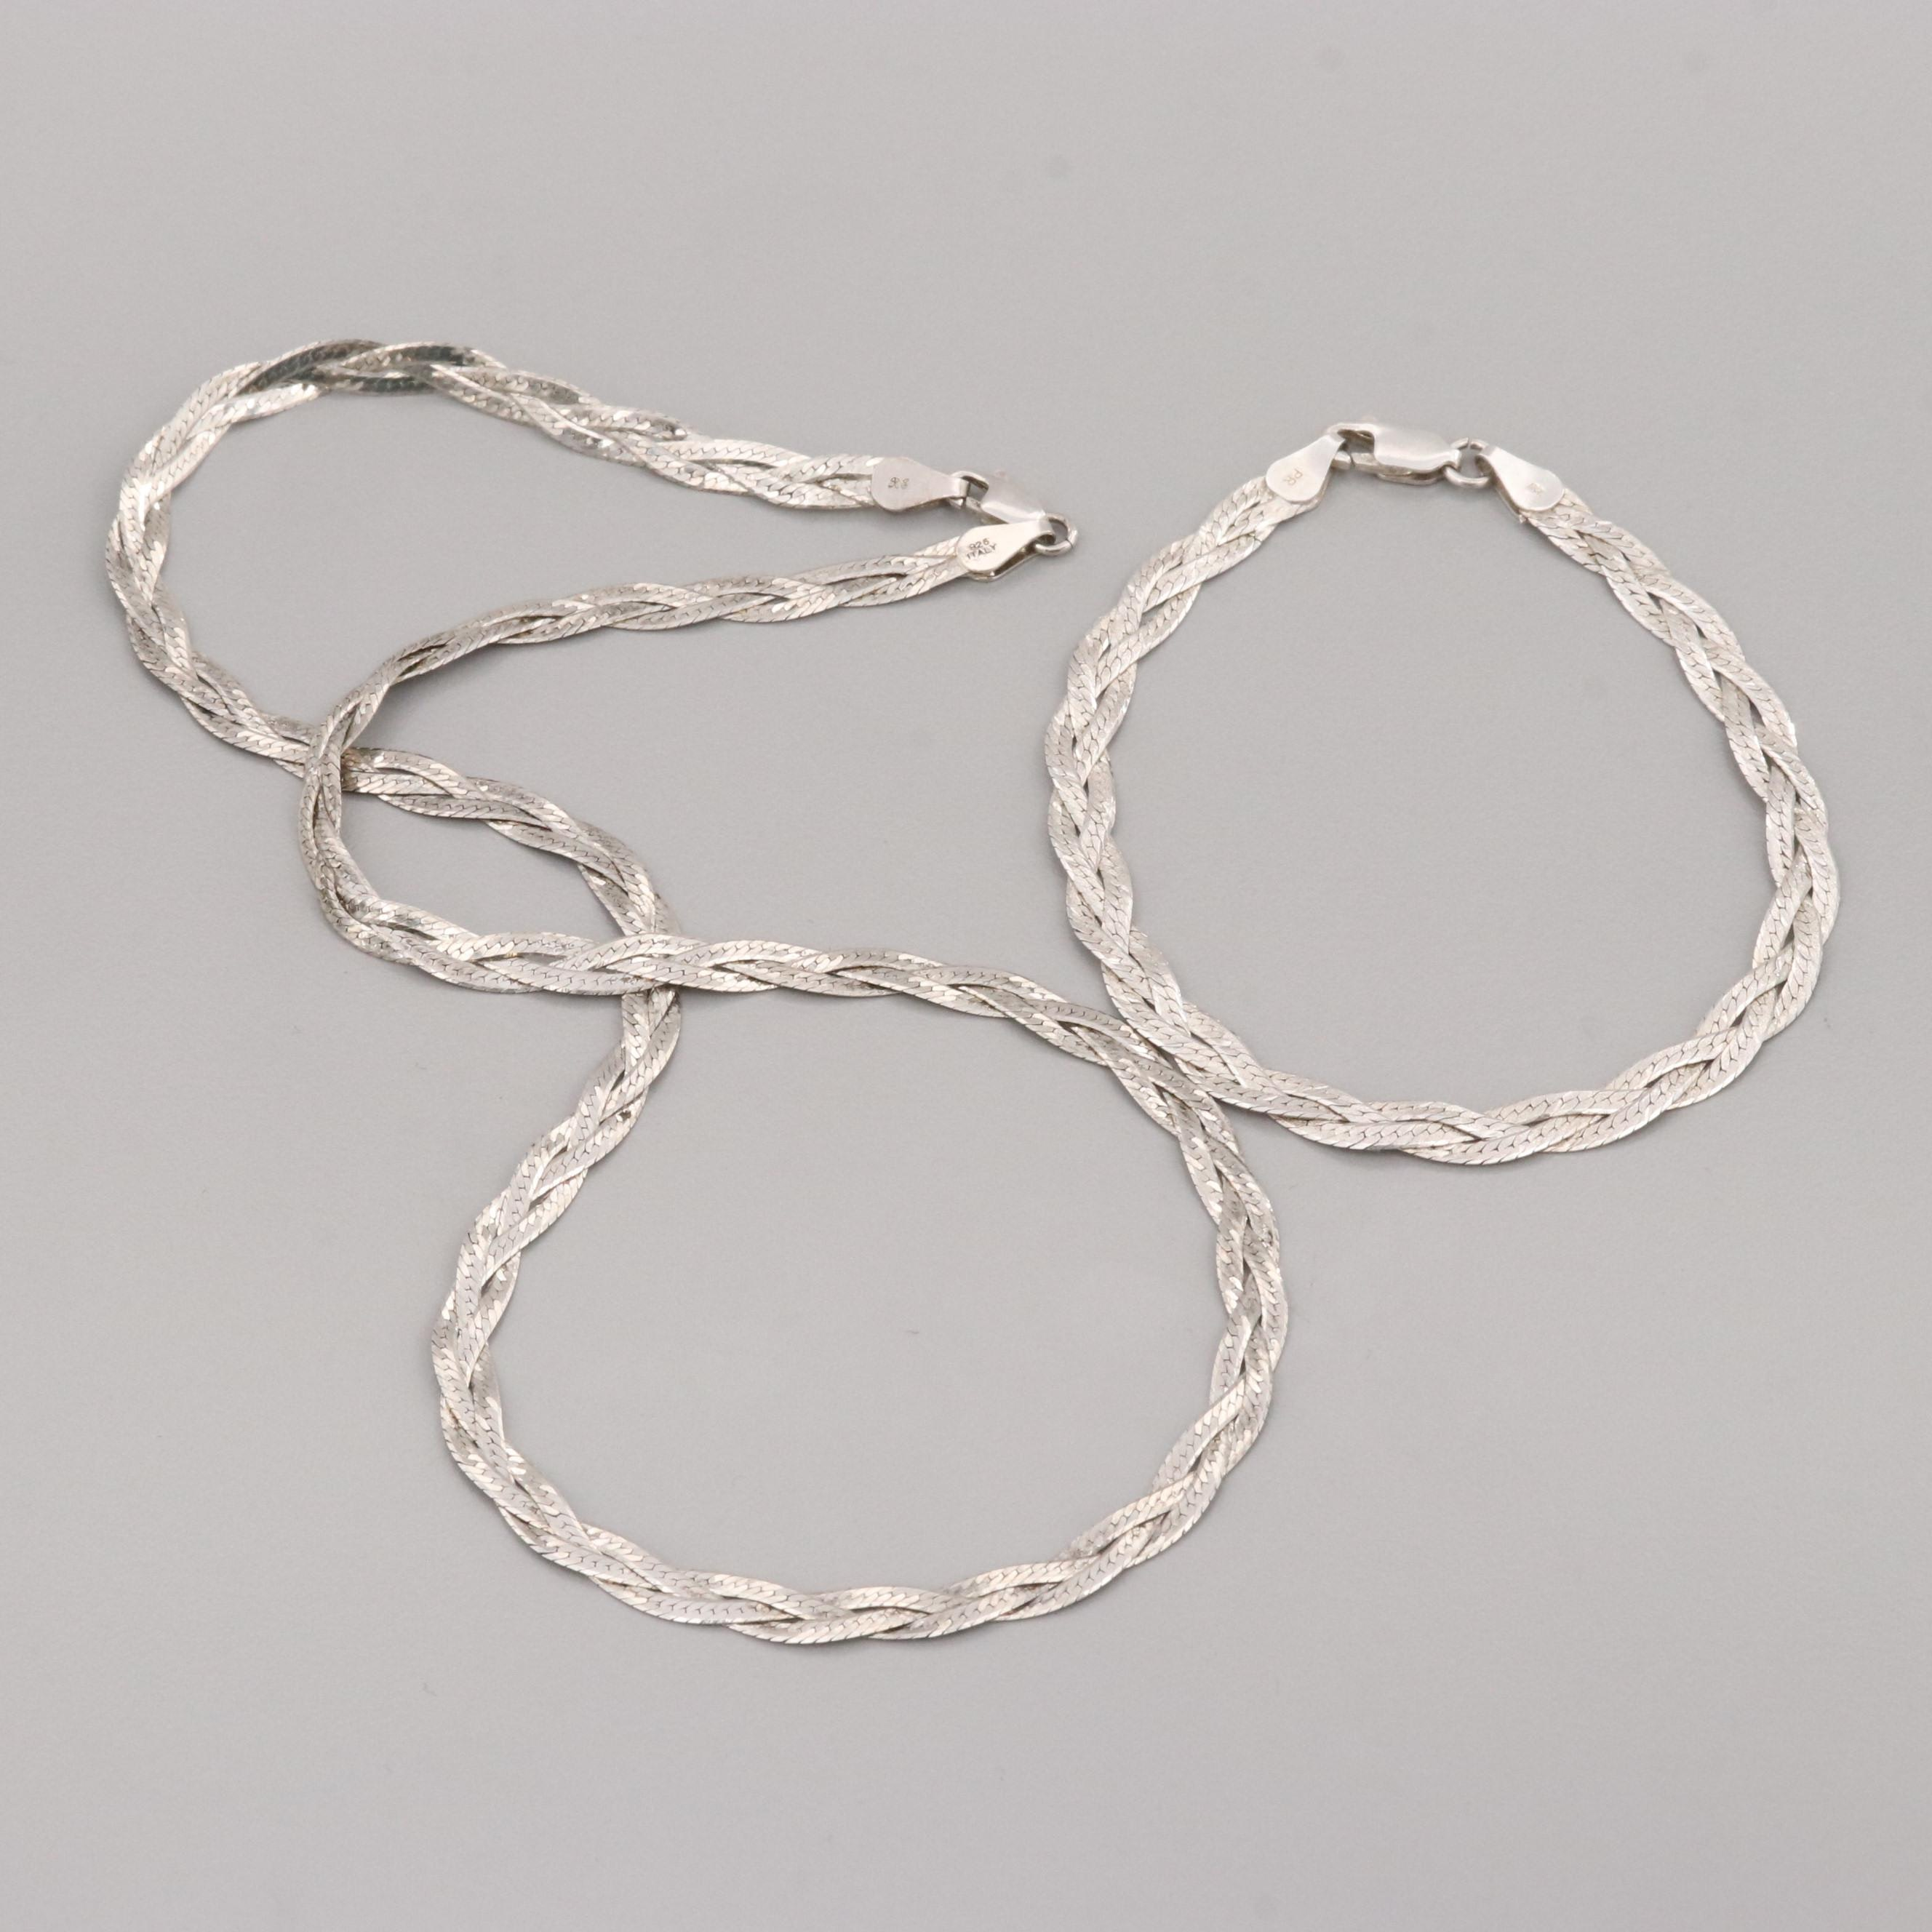 Sterling Silver Braided Herringbone Necklace and Bracelet